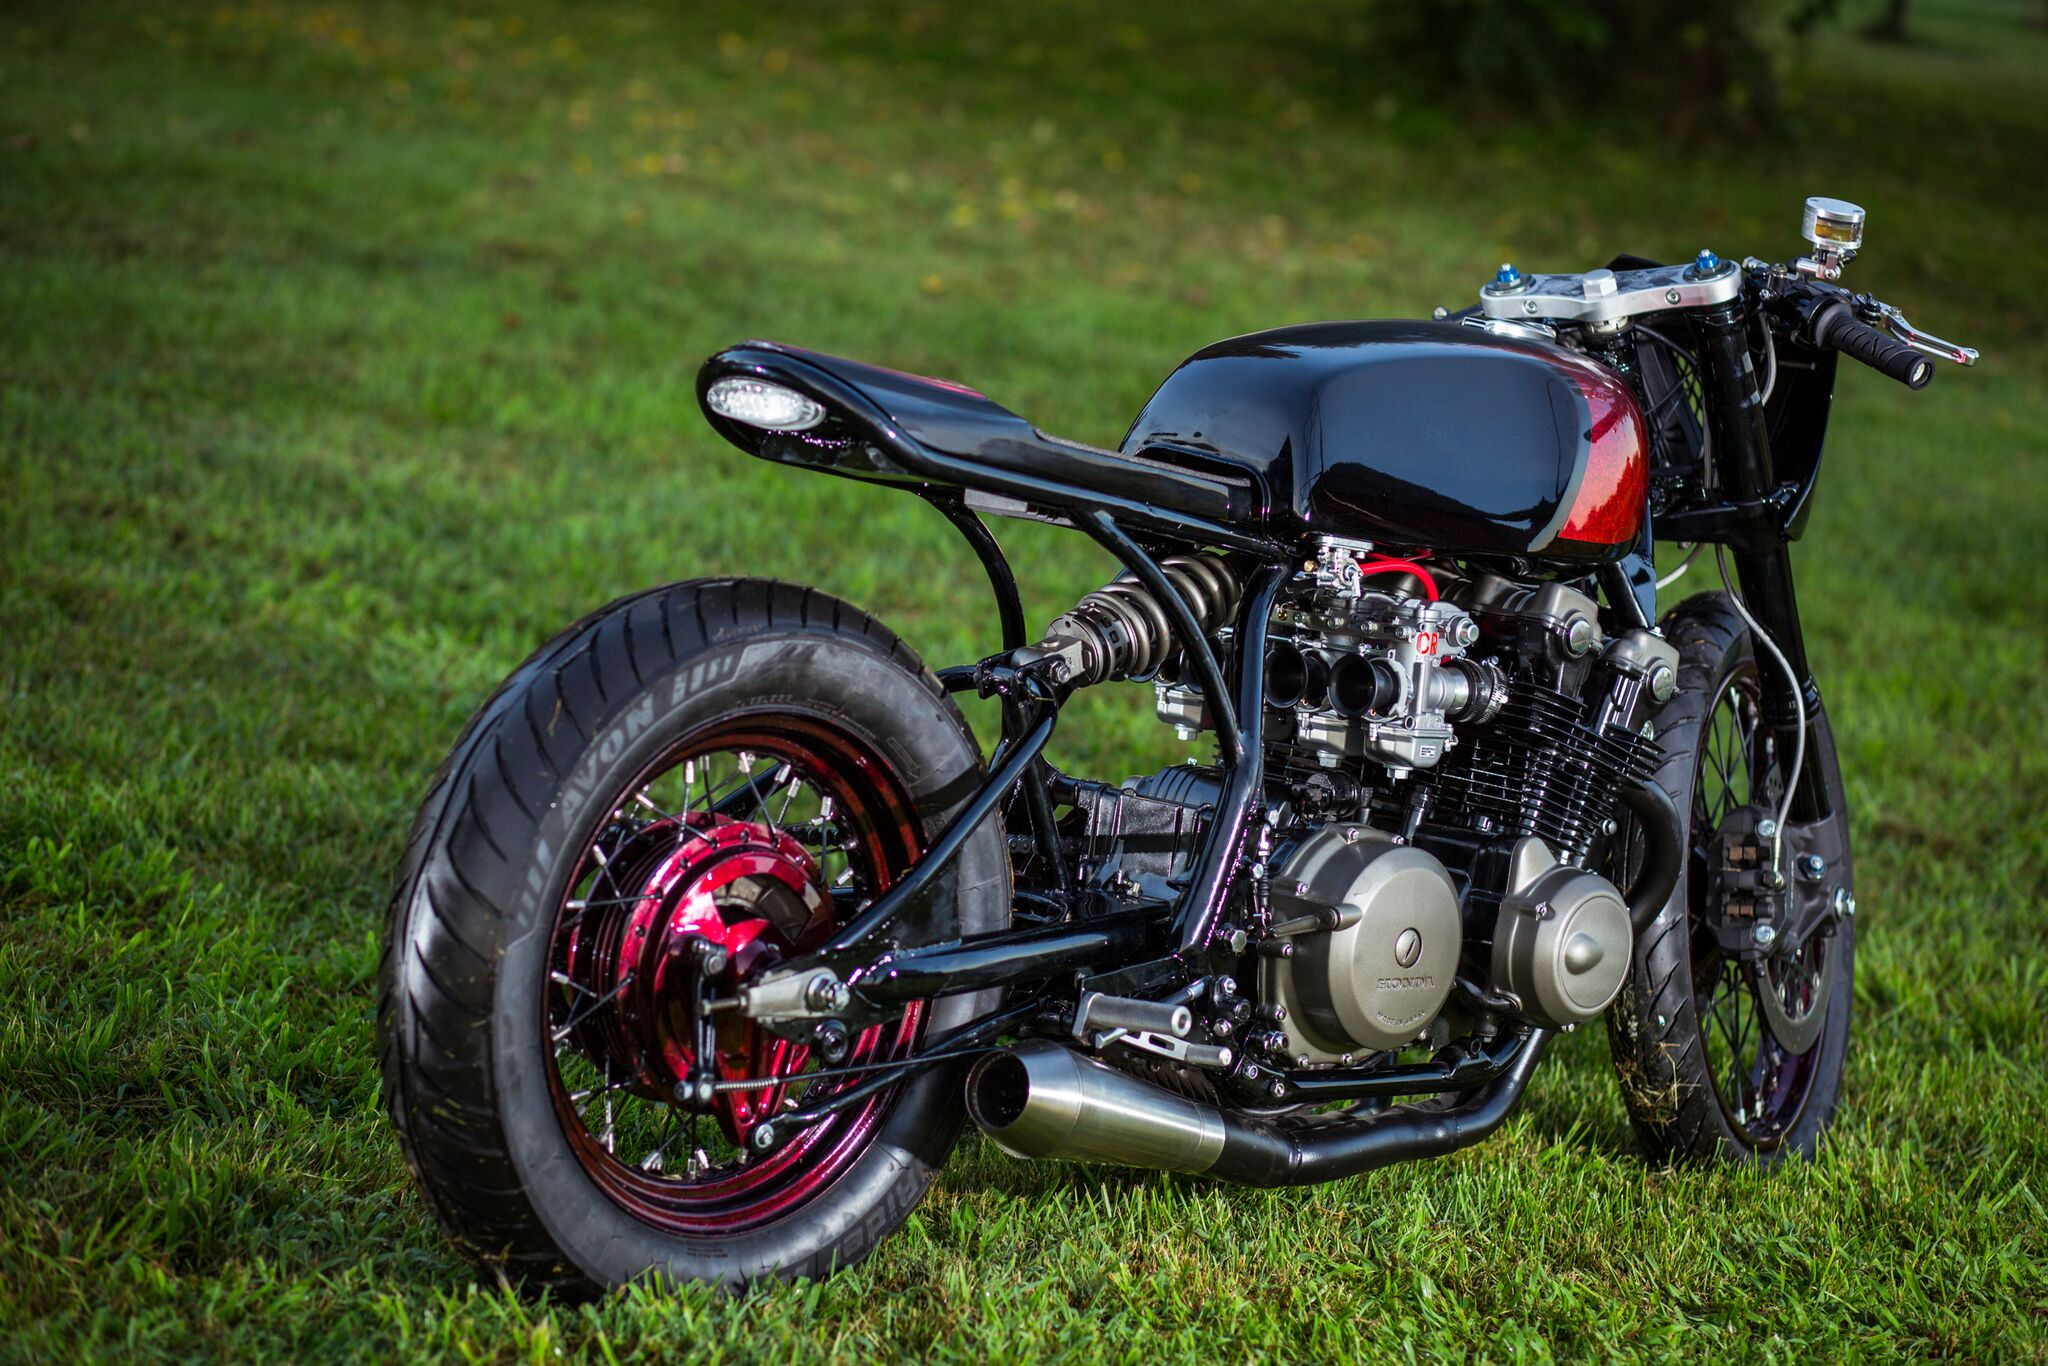 Watching Cafe Racer TV And Before Long He Had Converted His Garage Into A Shop Started Legion Cycle Works With This 1979 CB750 Limited Edition